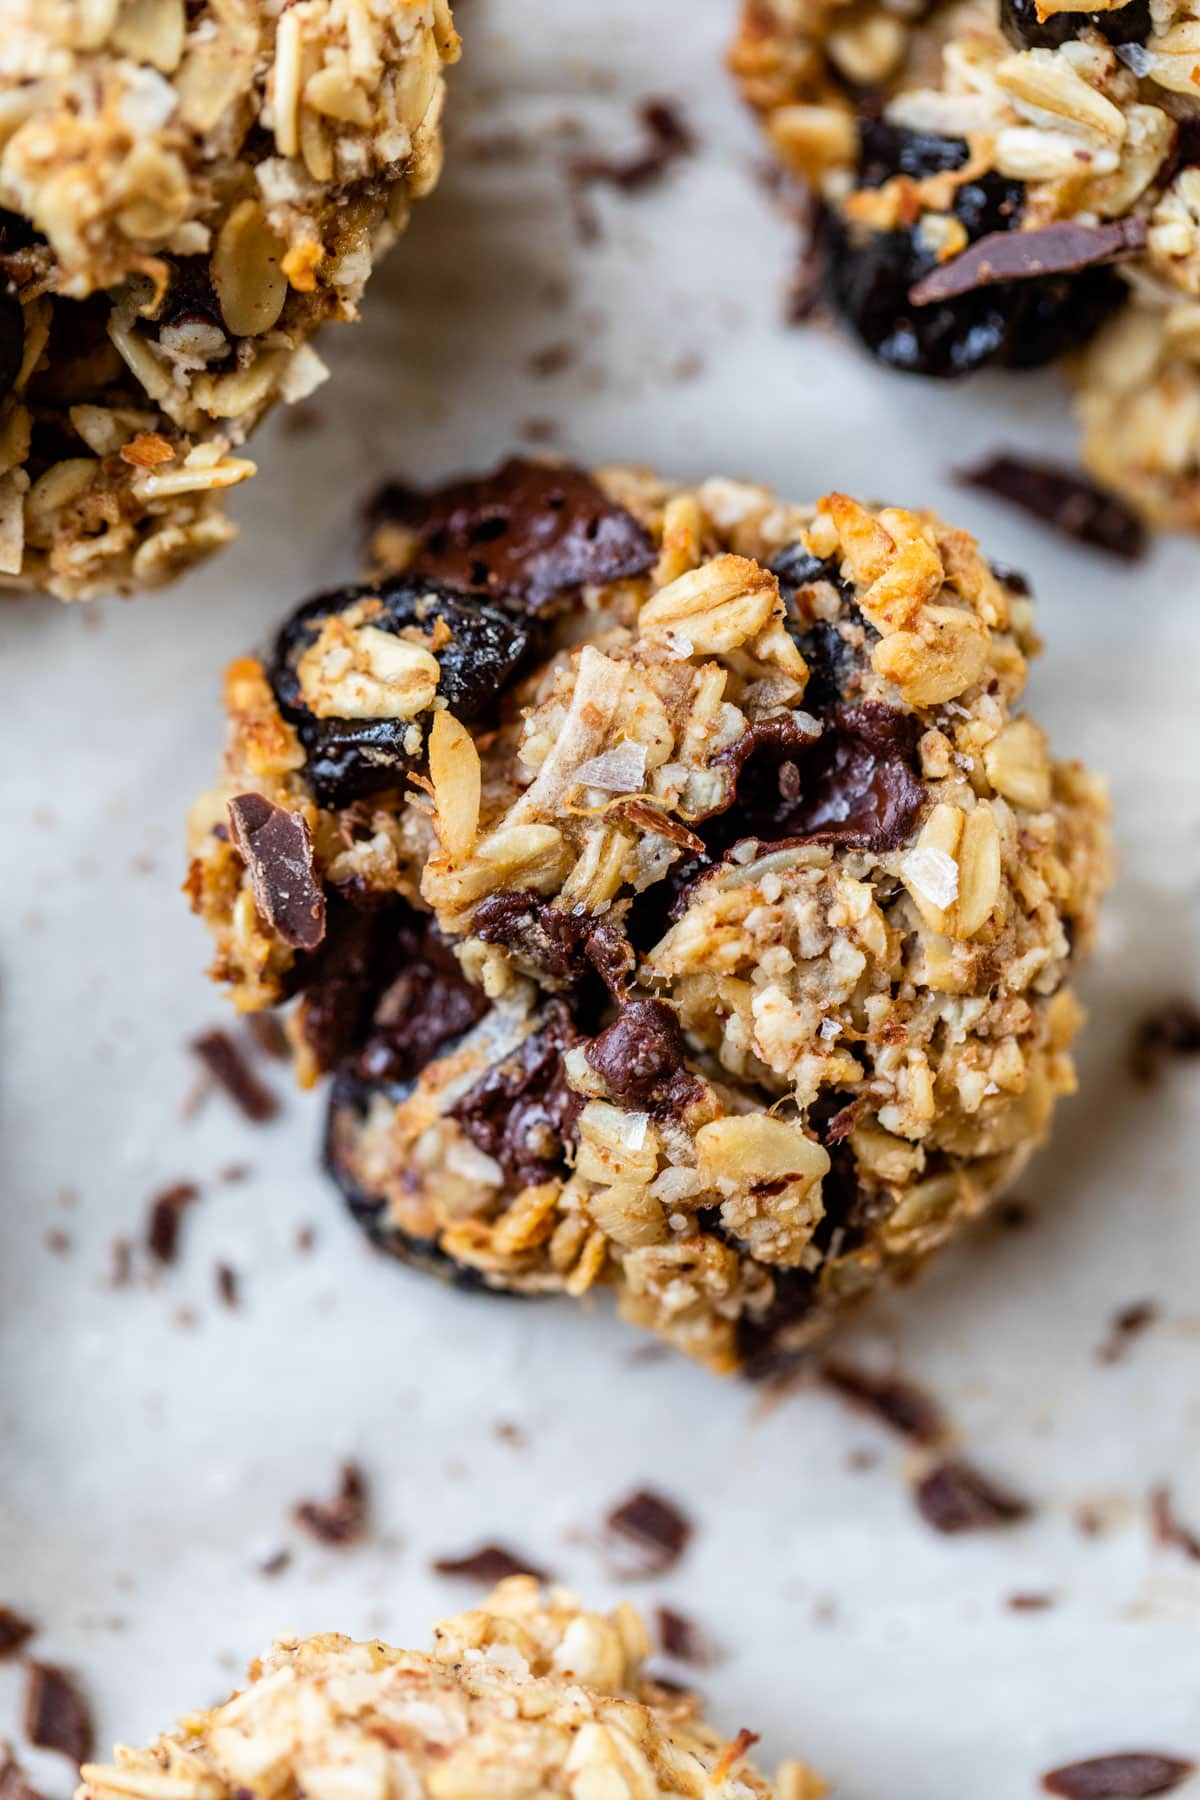 FINALLY a healthy cookie that tastes great! Healthy Chocolate Cherry Snack Cookies {vegan and gluten free!}